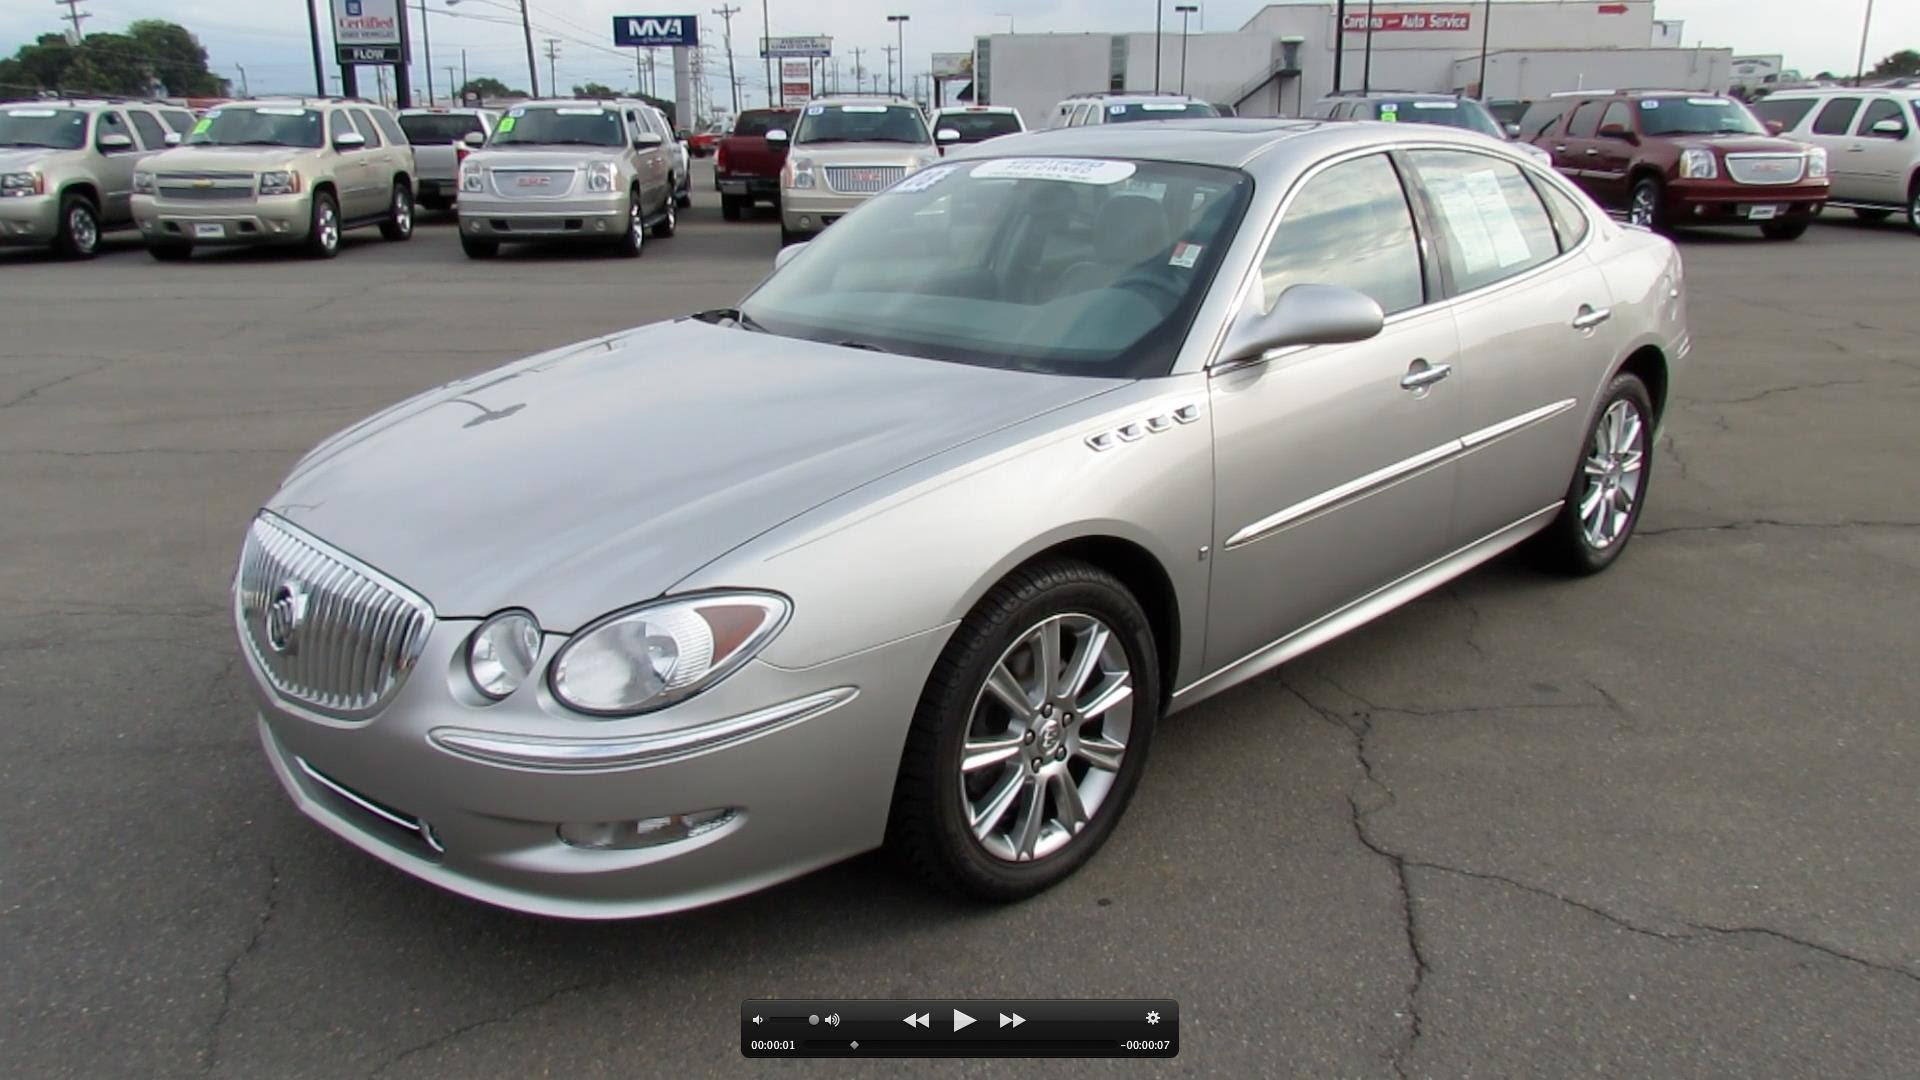 buick lacrosse 2004 pictures #2